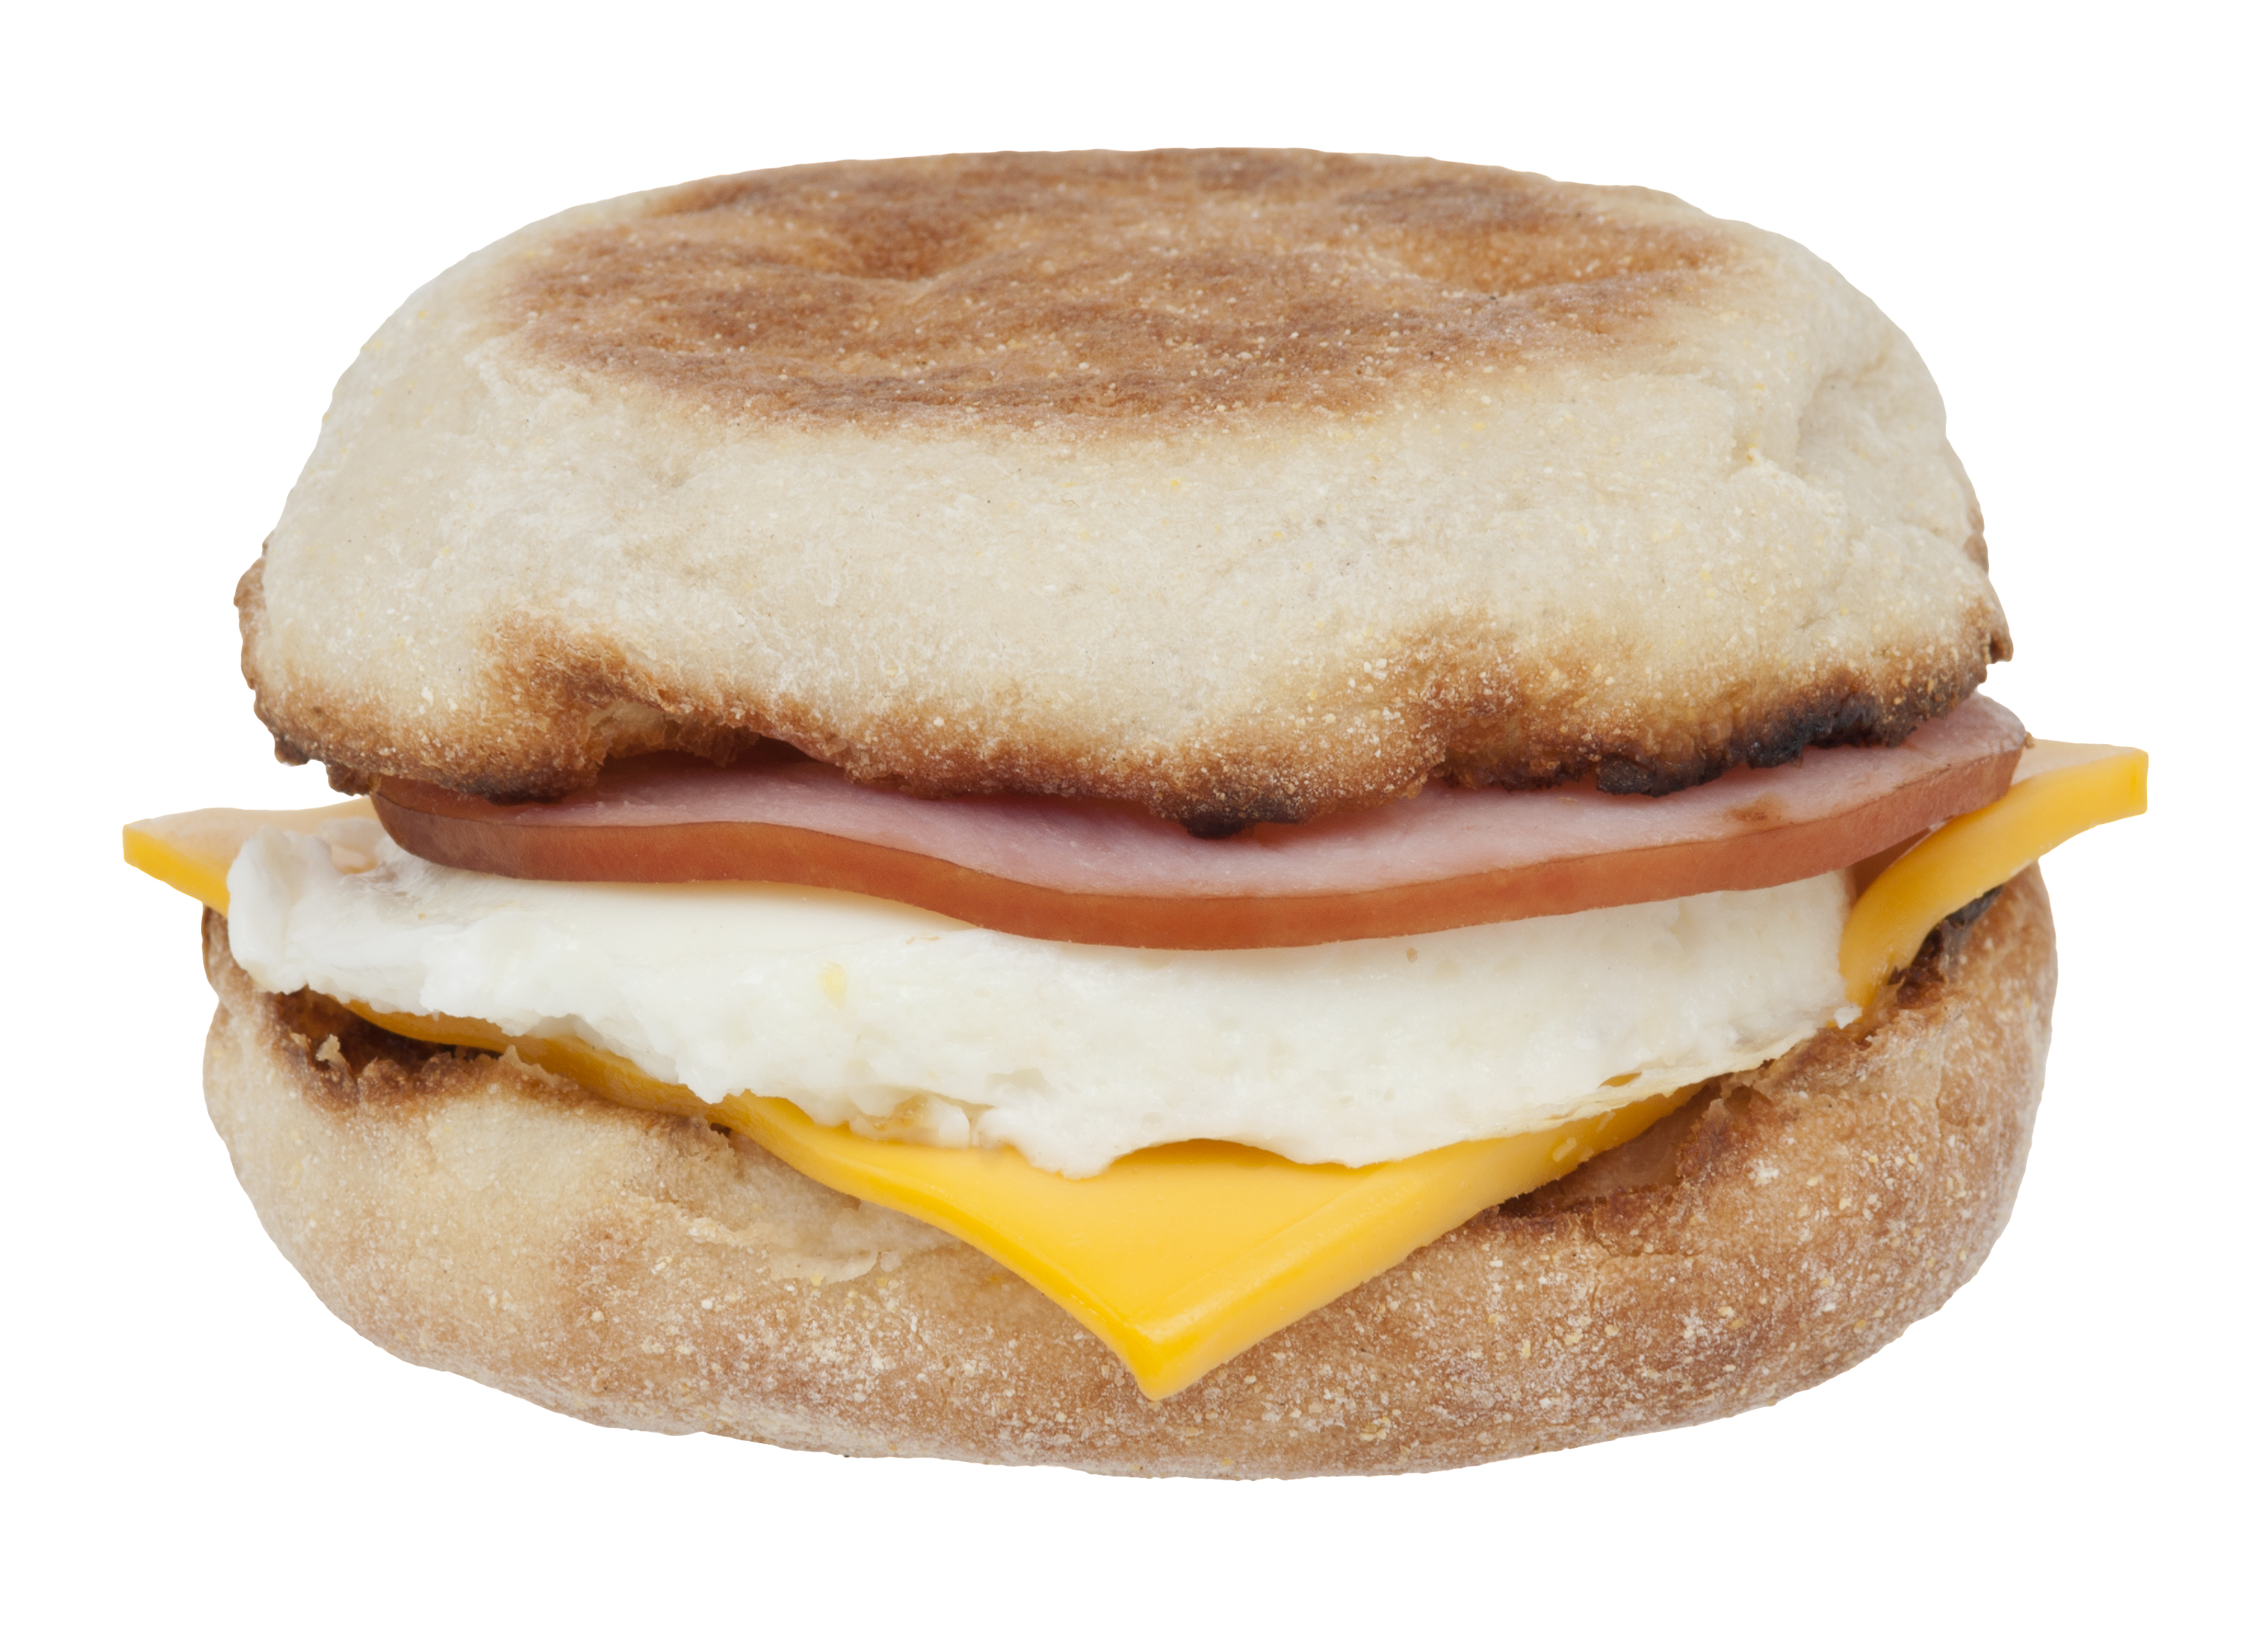 https://i2.wp.com/upload.wikimedia.org/wikipedia/commons/0/07/McD-Egg-McMuffin.jpg